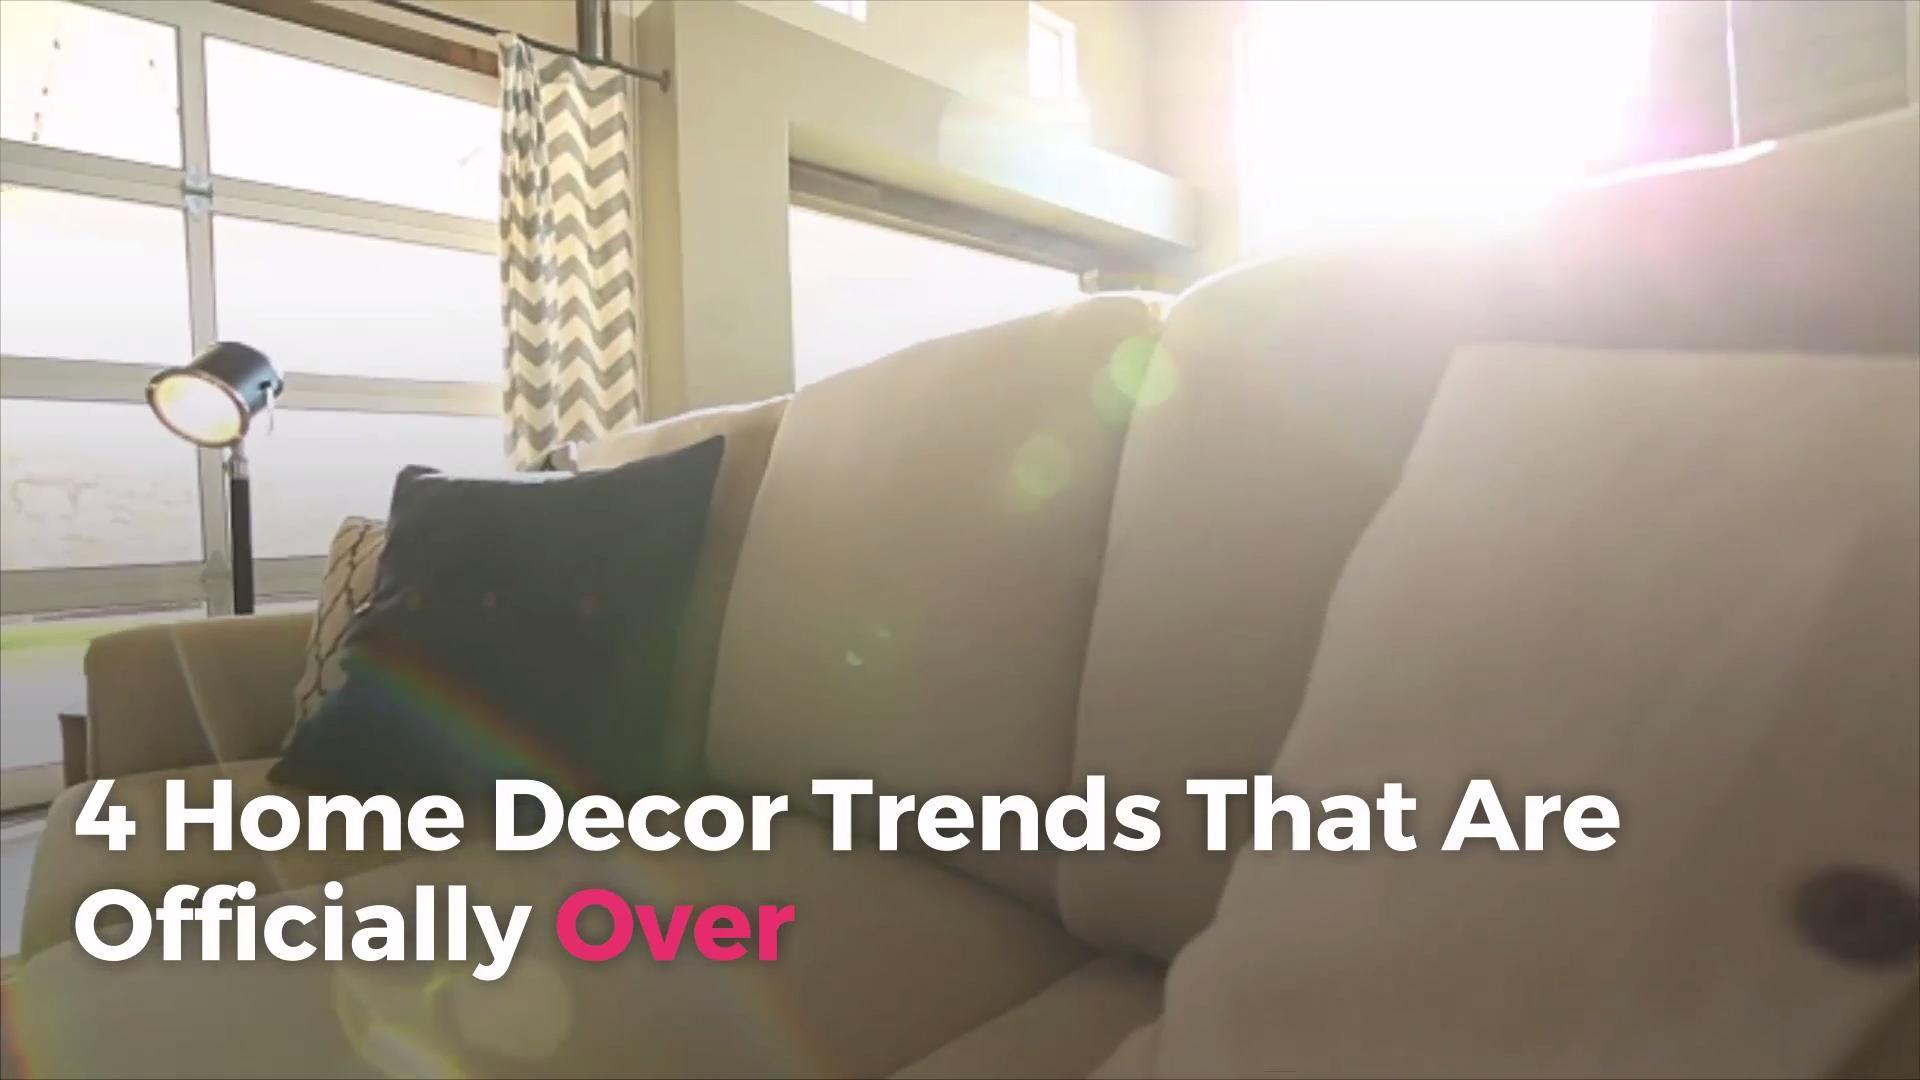 4 Home Decor Trends That Are Officially Over